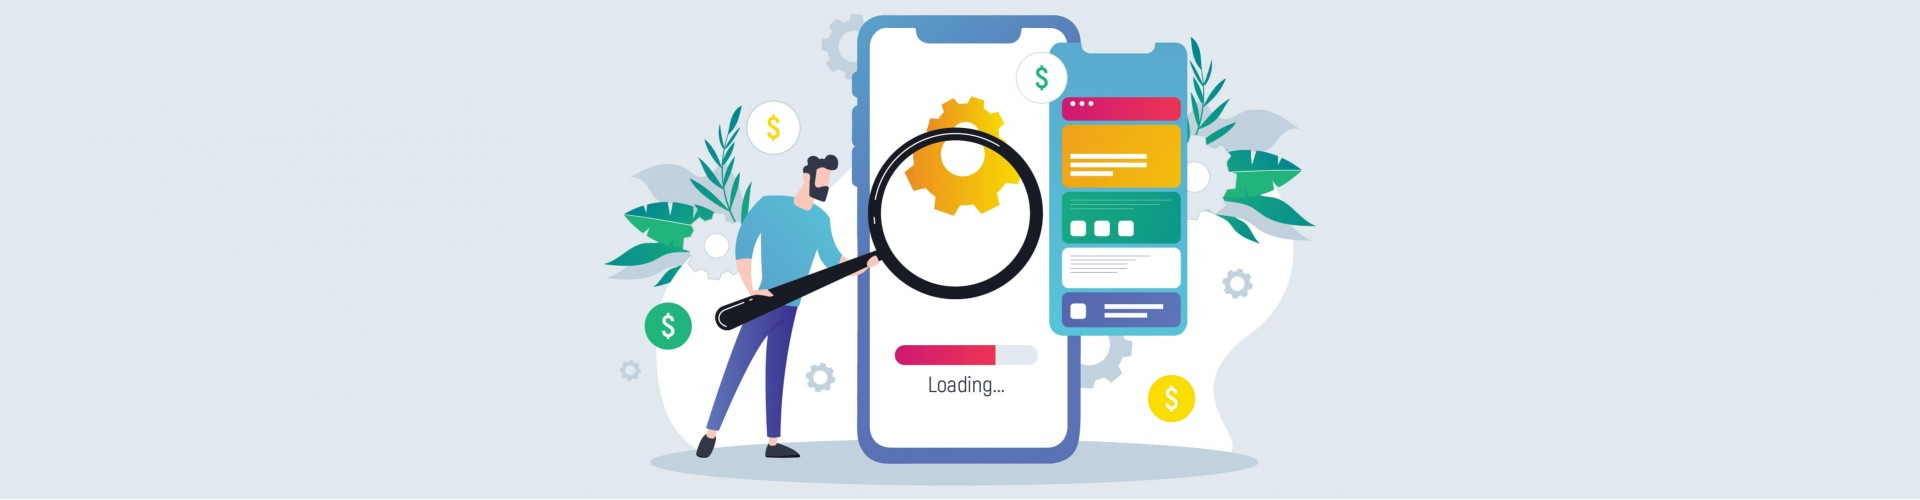 Mobile App Maintenance Cost: Full Post-Launch Product Development Strategy